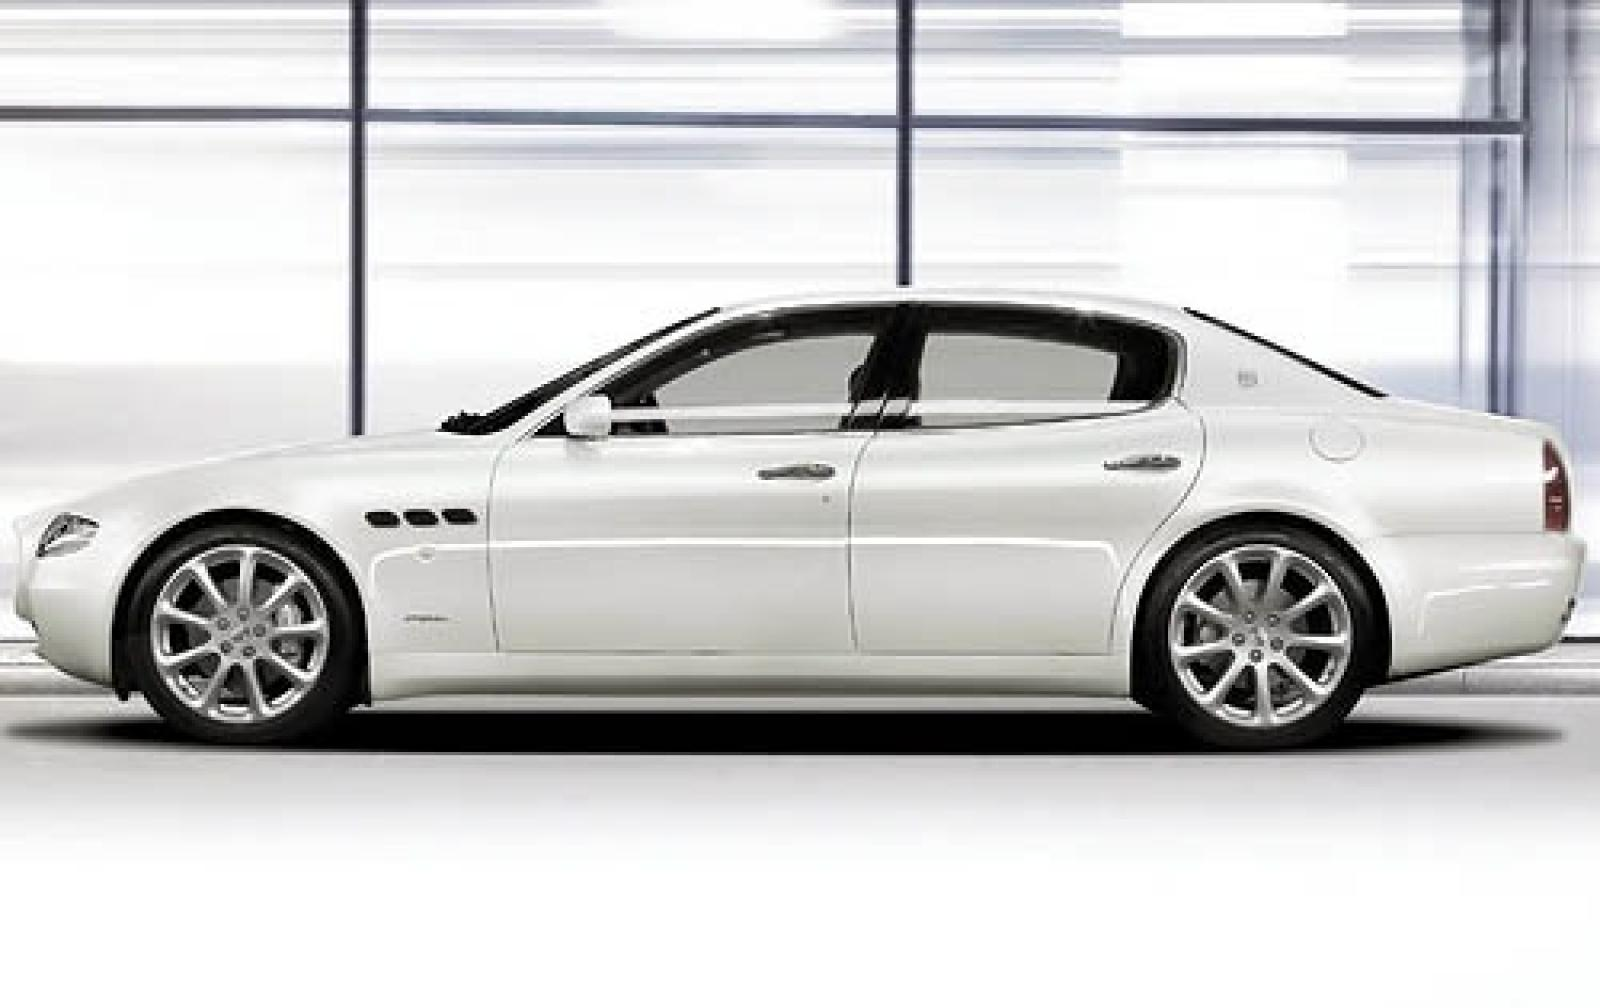 2008 maserati quattroporte information and photos zombiedrive. Black Bedroom Furniture Sets. Home Design Ideas